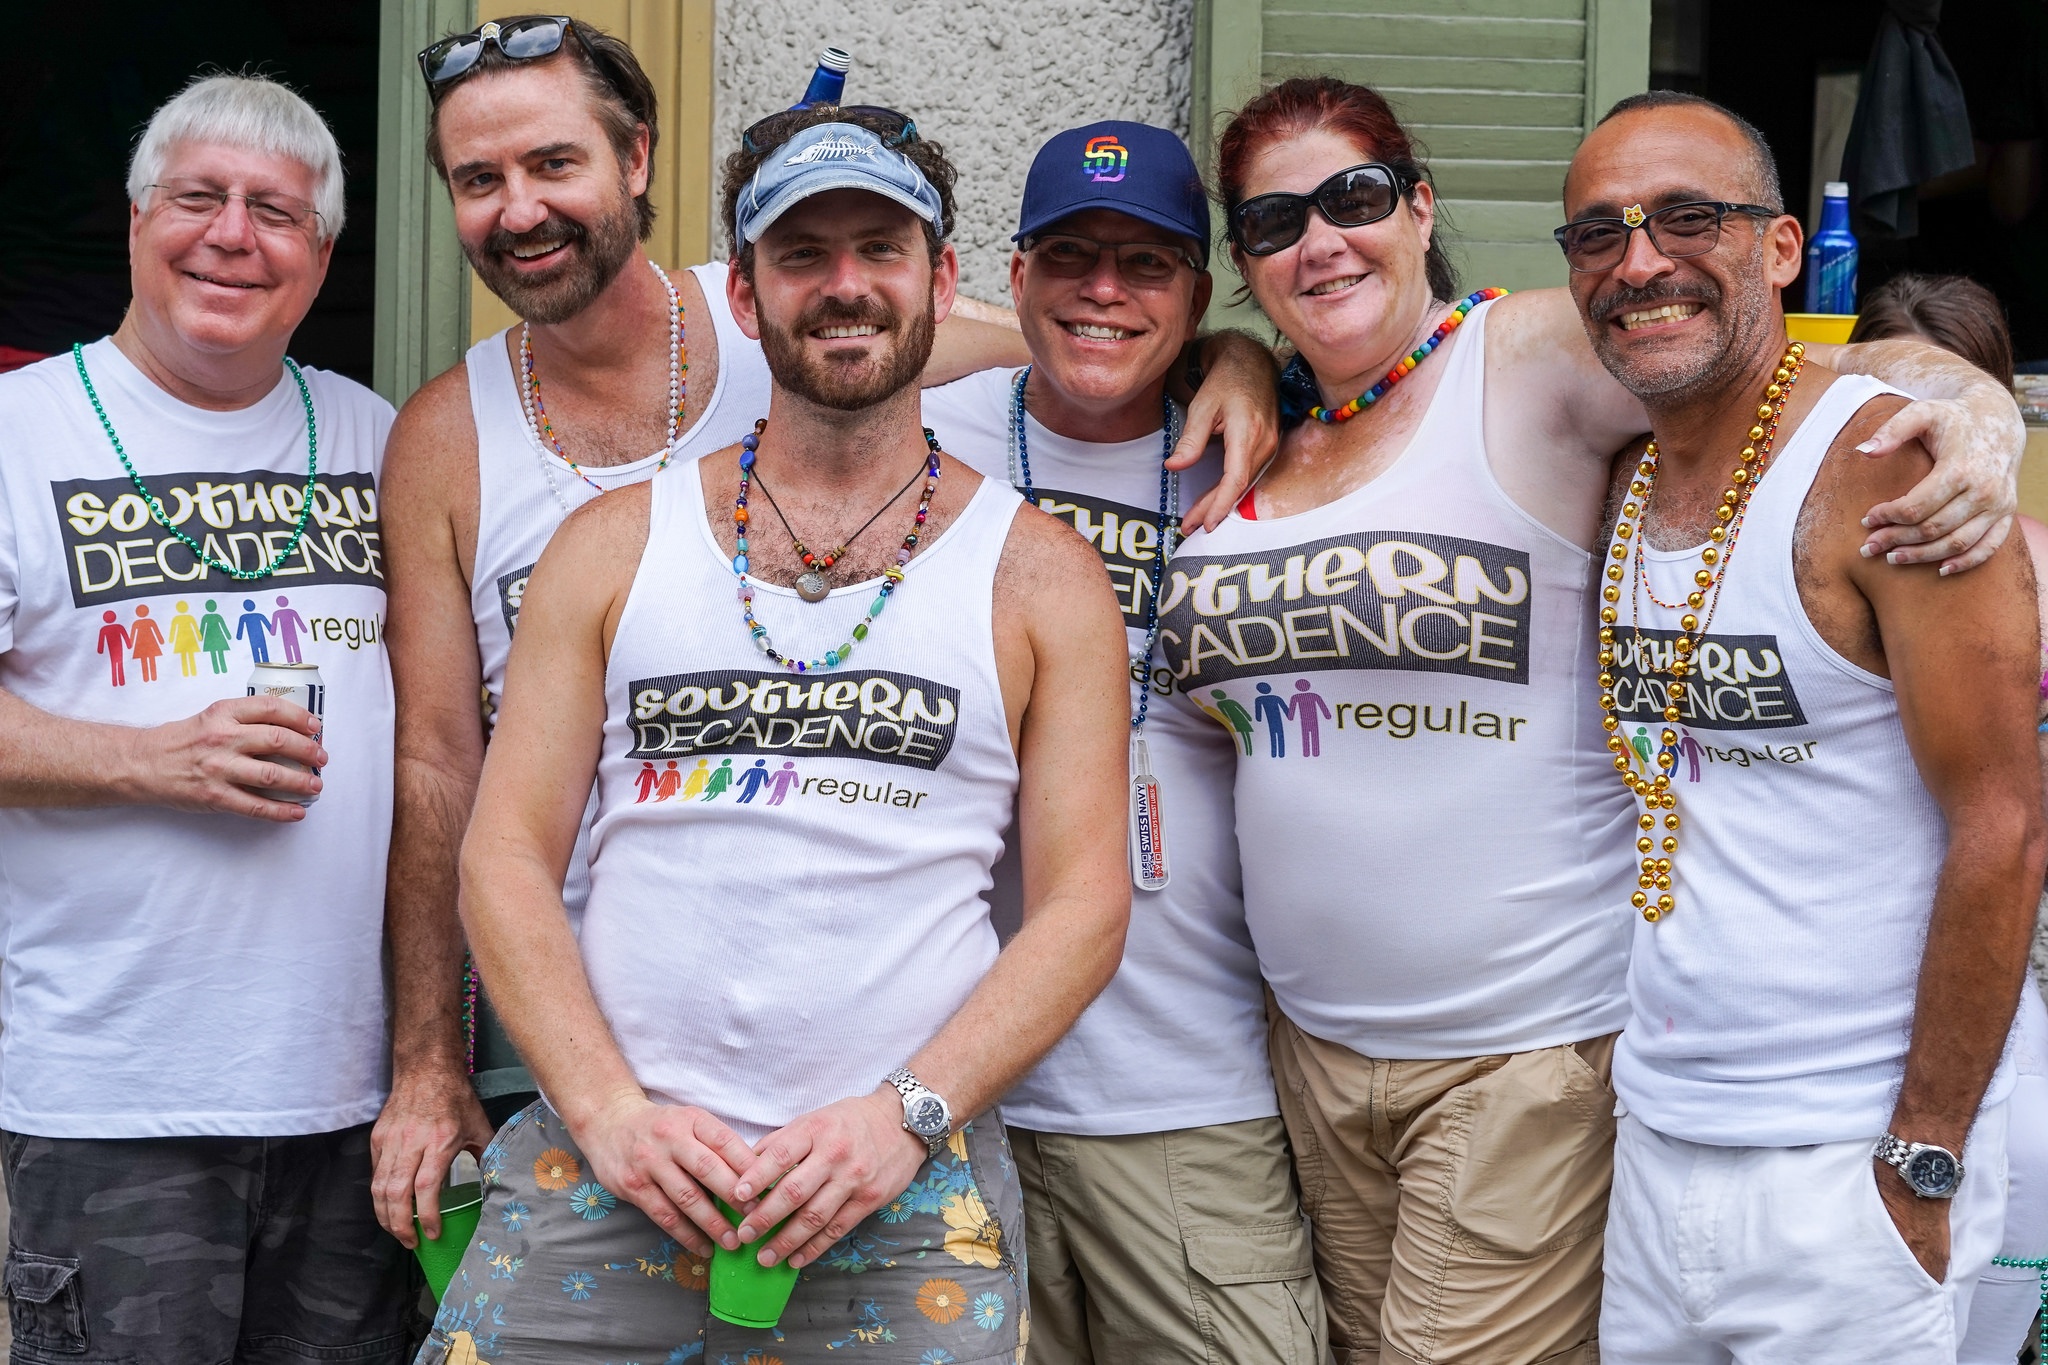 Southern Decadence visitors